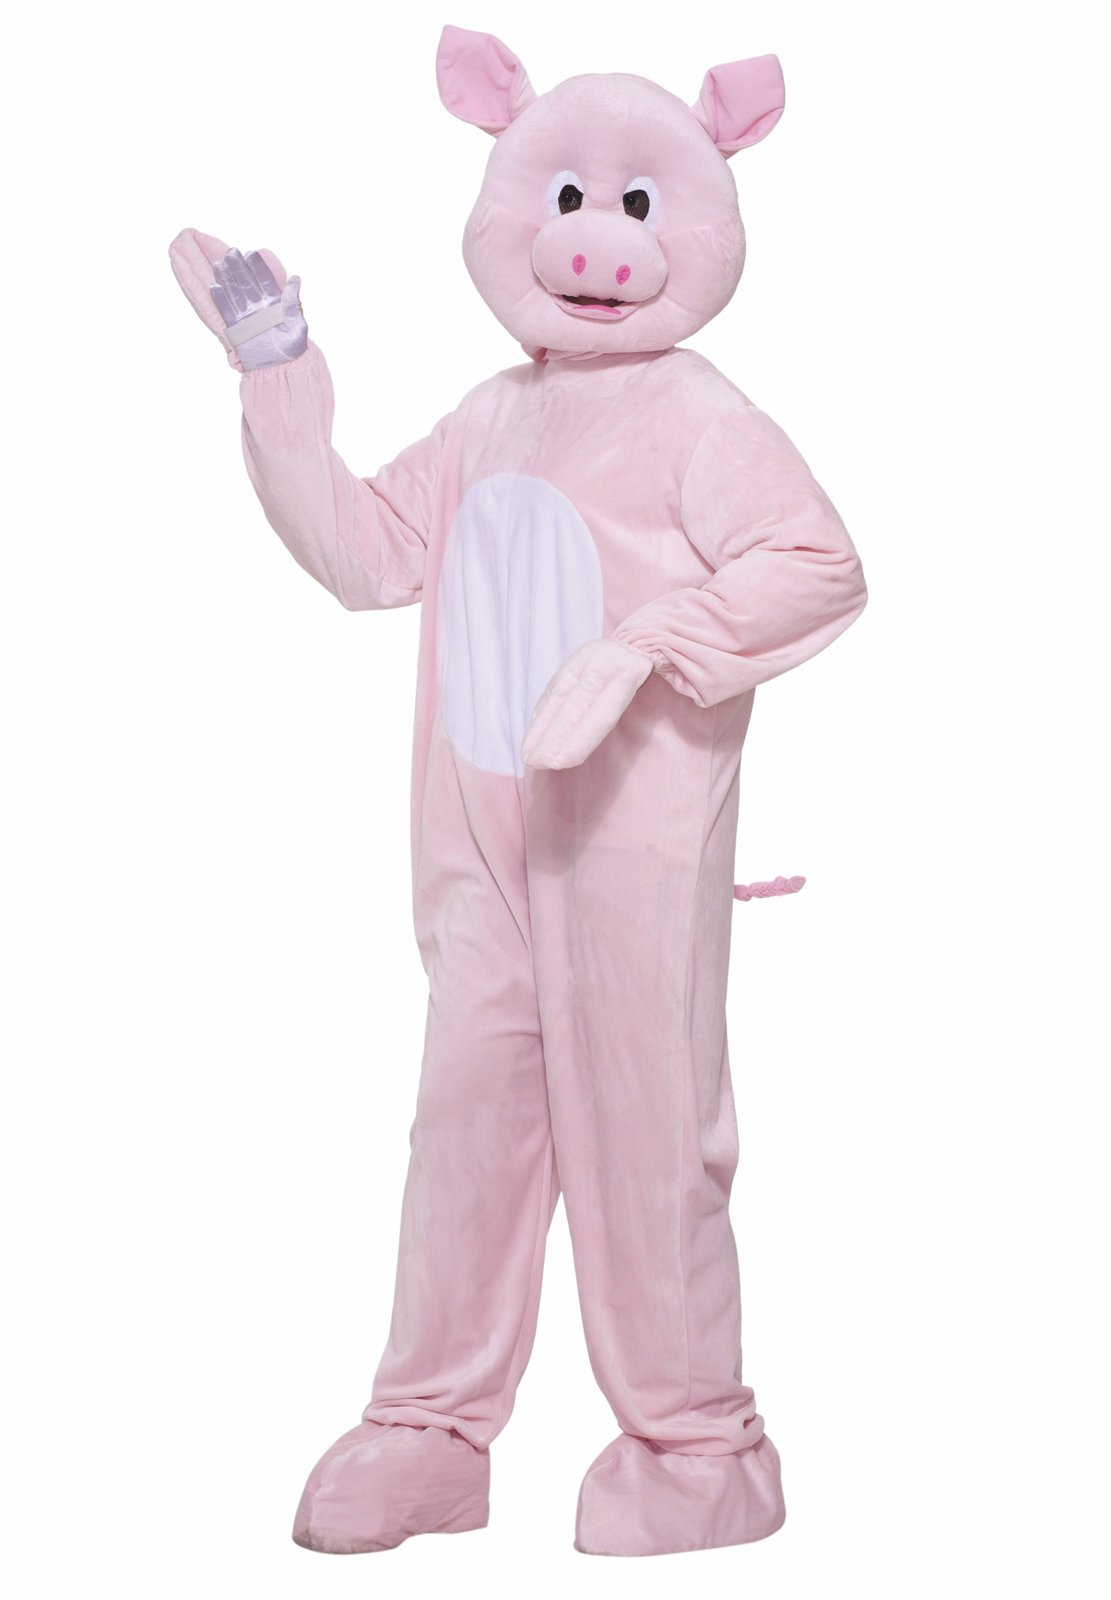 Pinky the Pig Plush Adult Costume